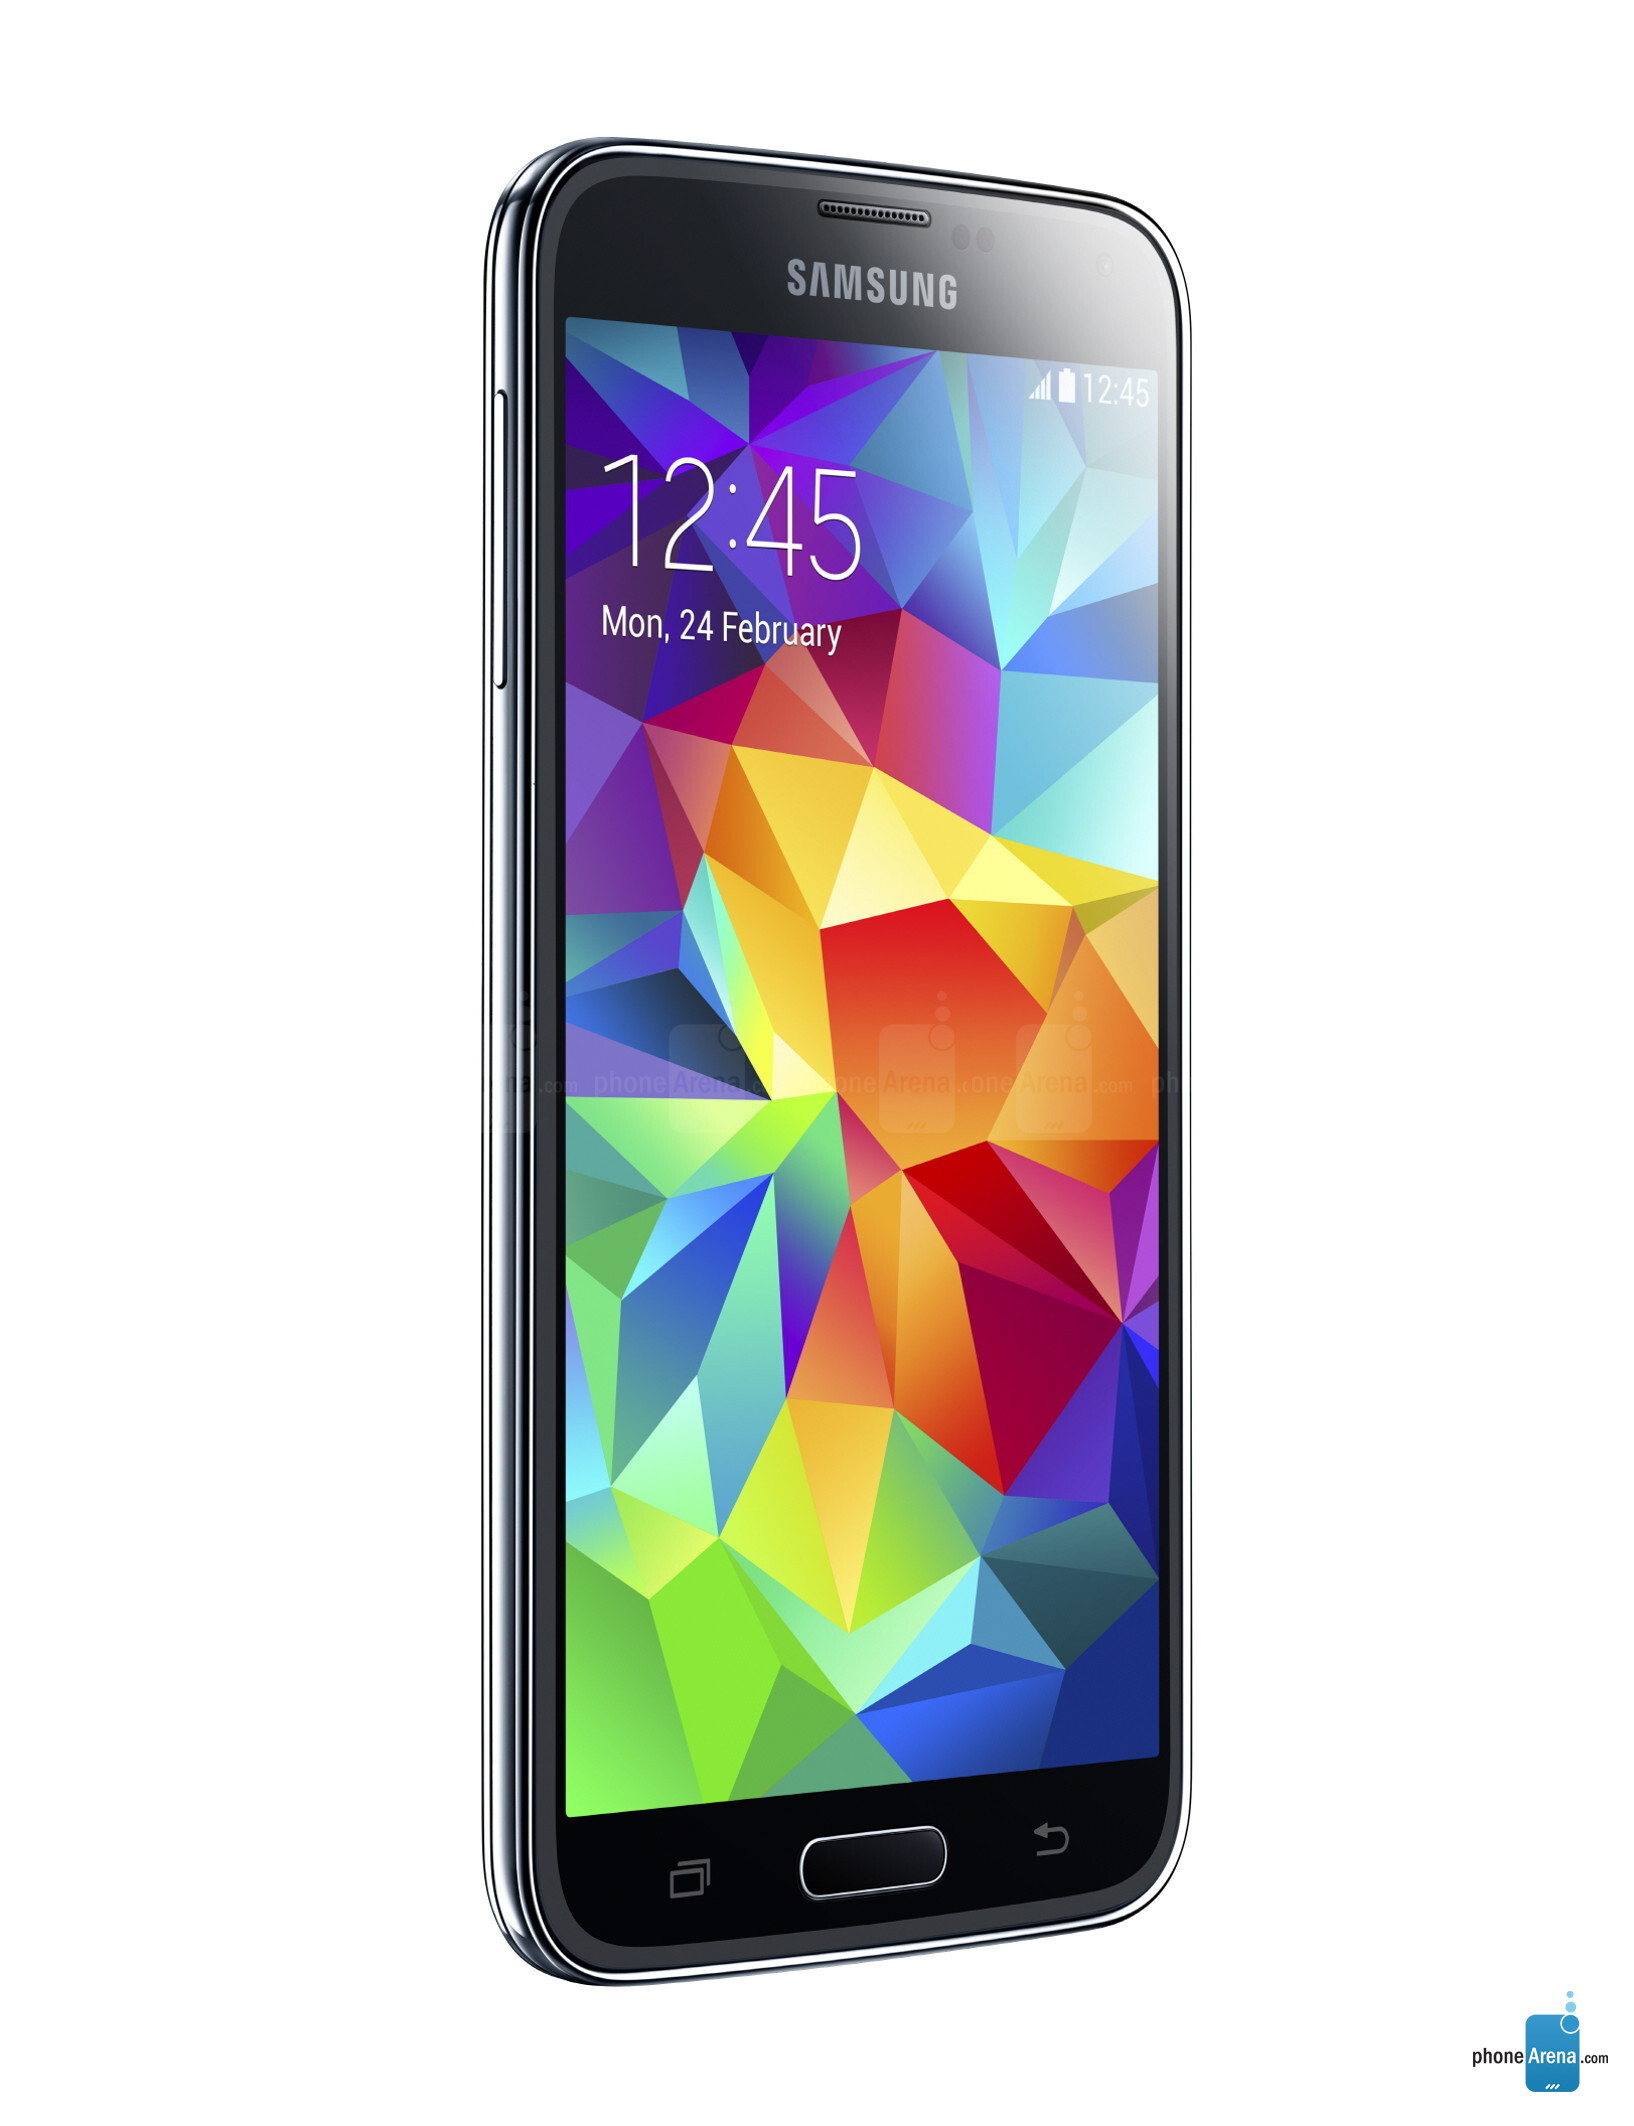 Samsung Galaxy S5 Tops Consumer Reports Latest Smartphone